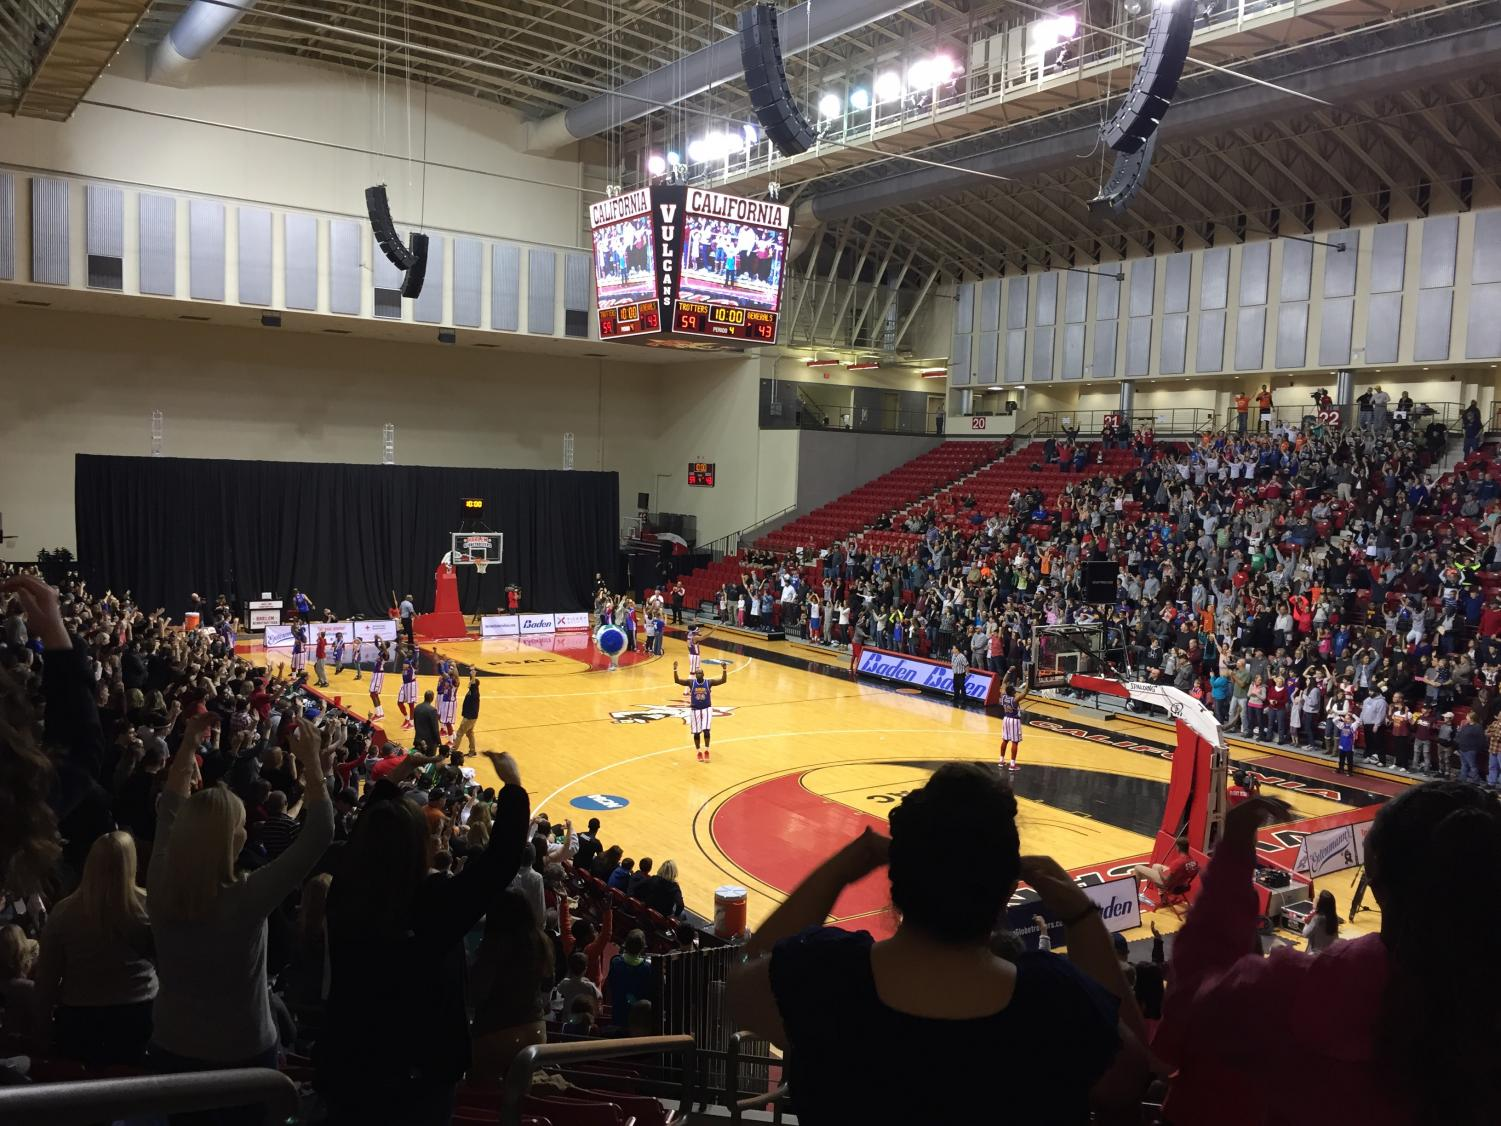 The Harlem Globetrotters lead the audience in the YMCA.